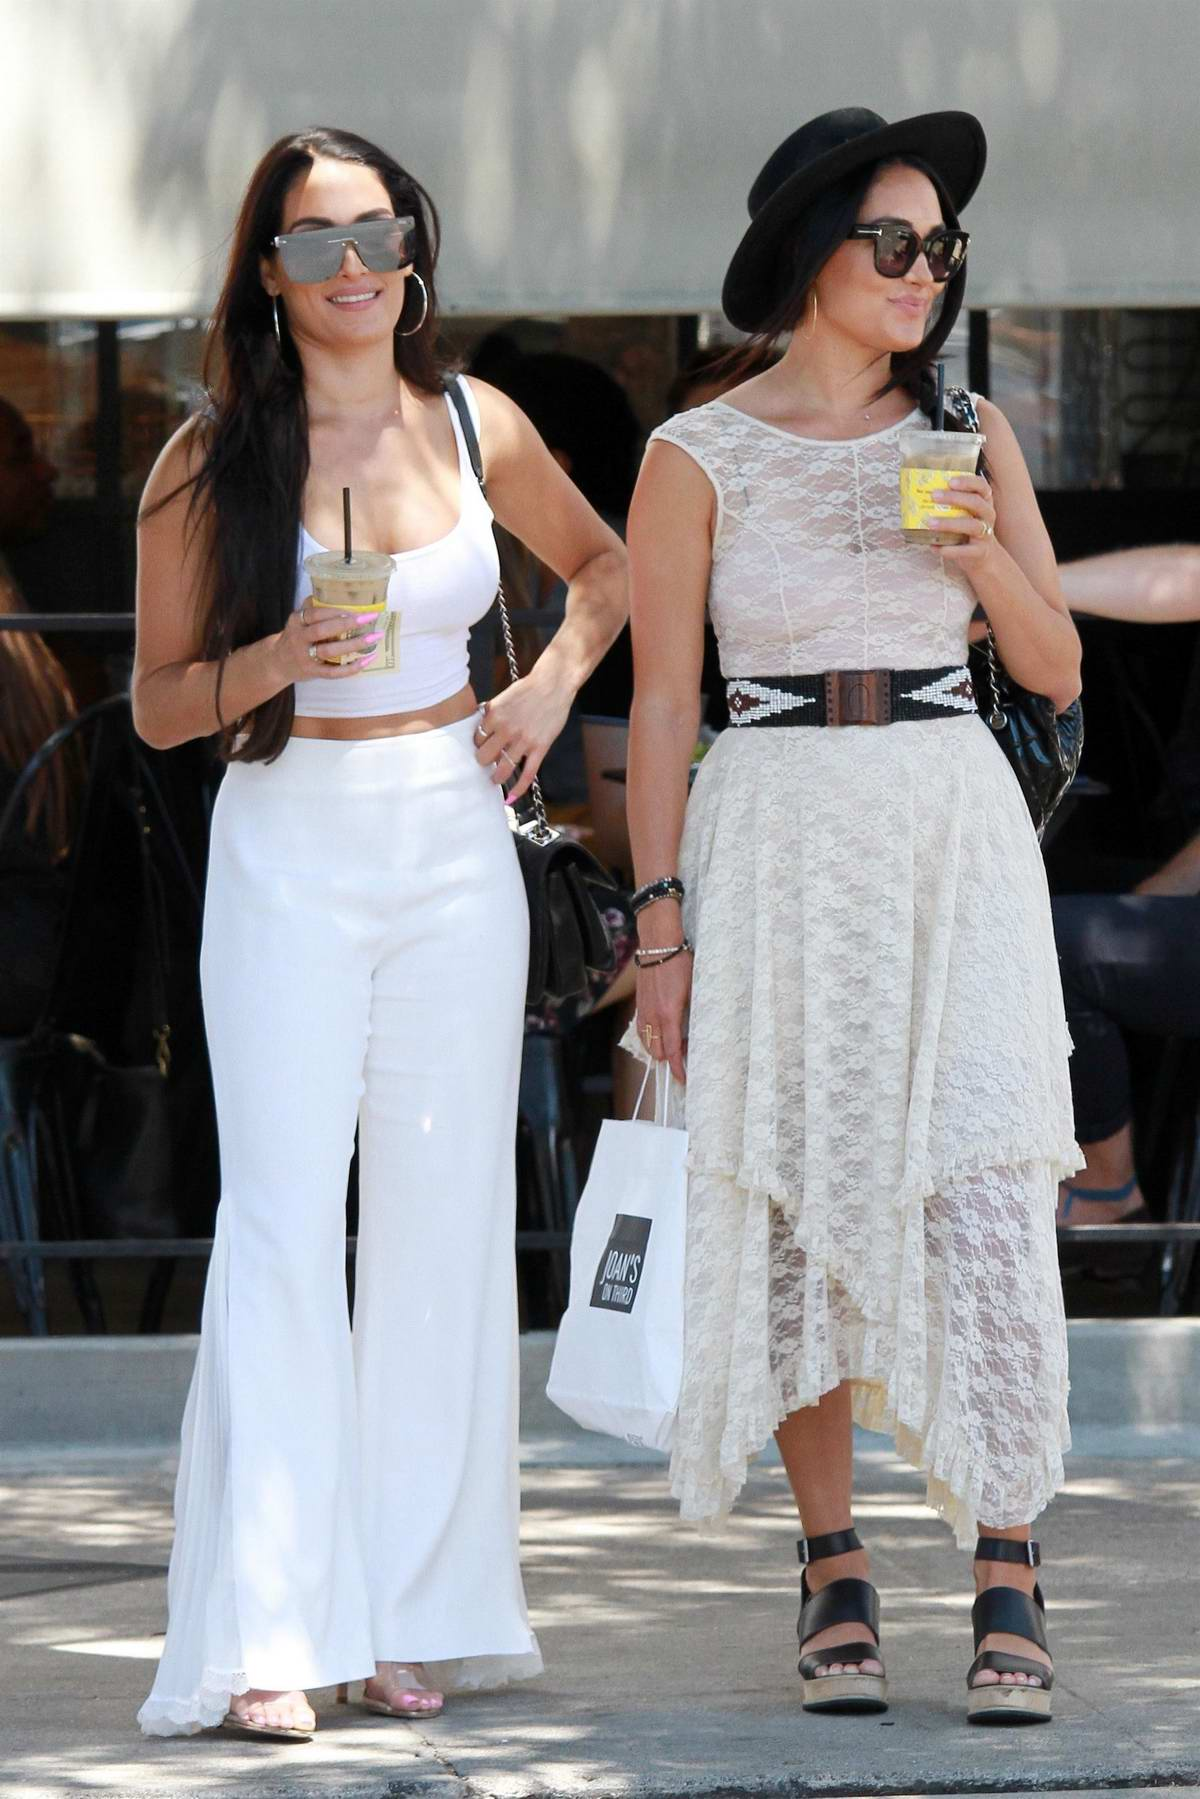 Nikki and Brie Bella step out in all-white ensembles for a lunch outing in Studio City, Los Angeles